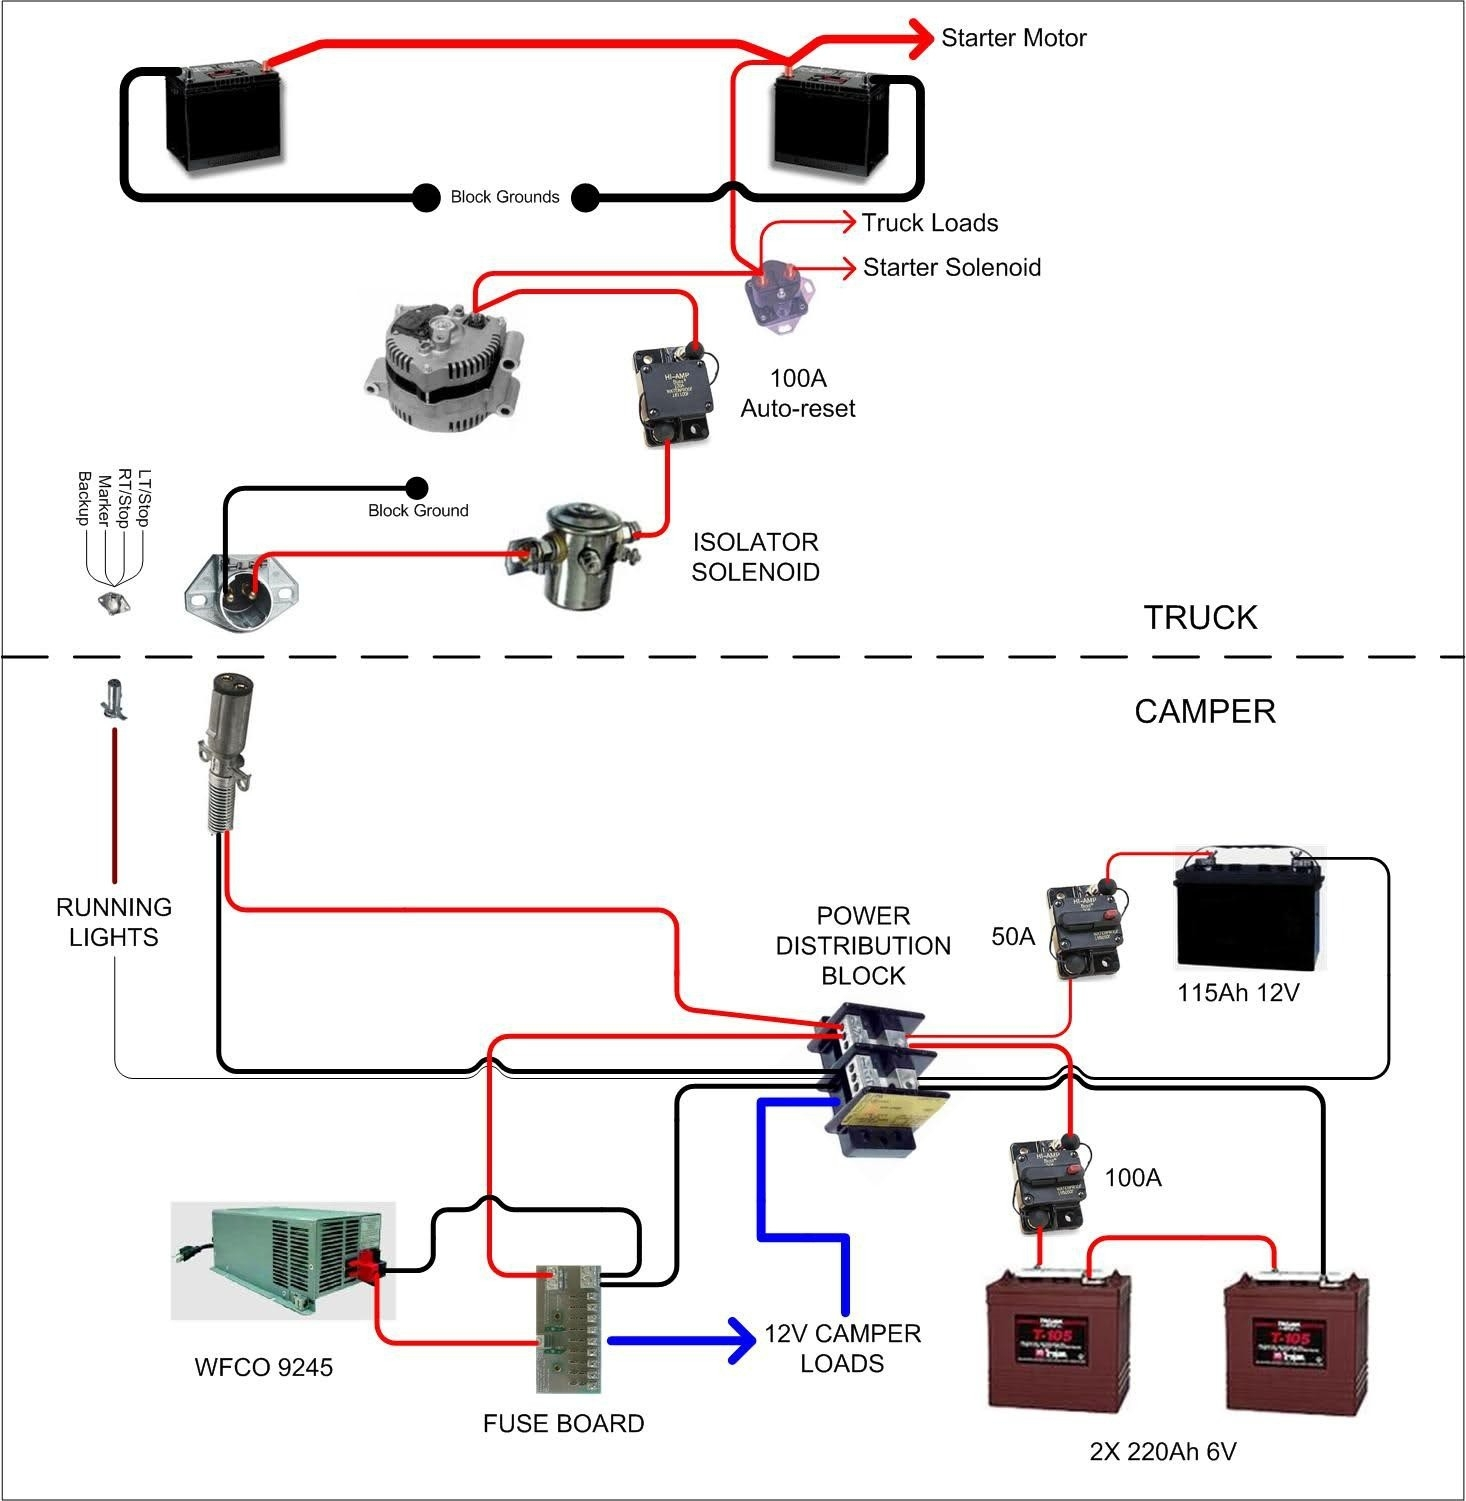 Fleetwood Rv Battery Wiring